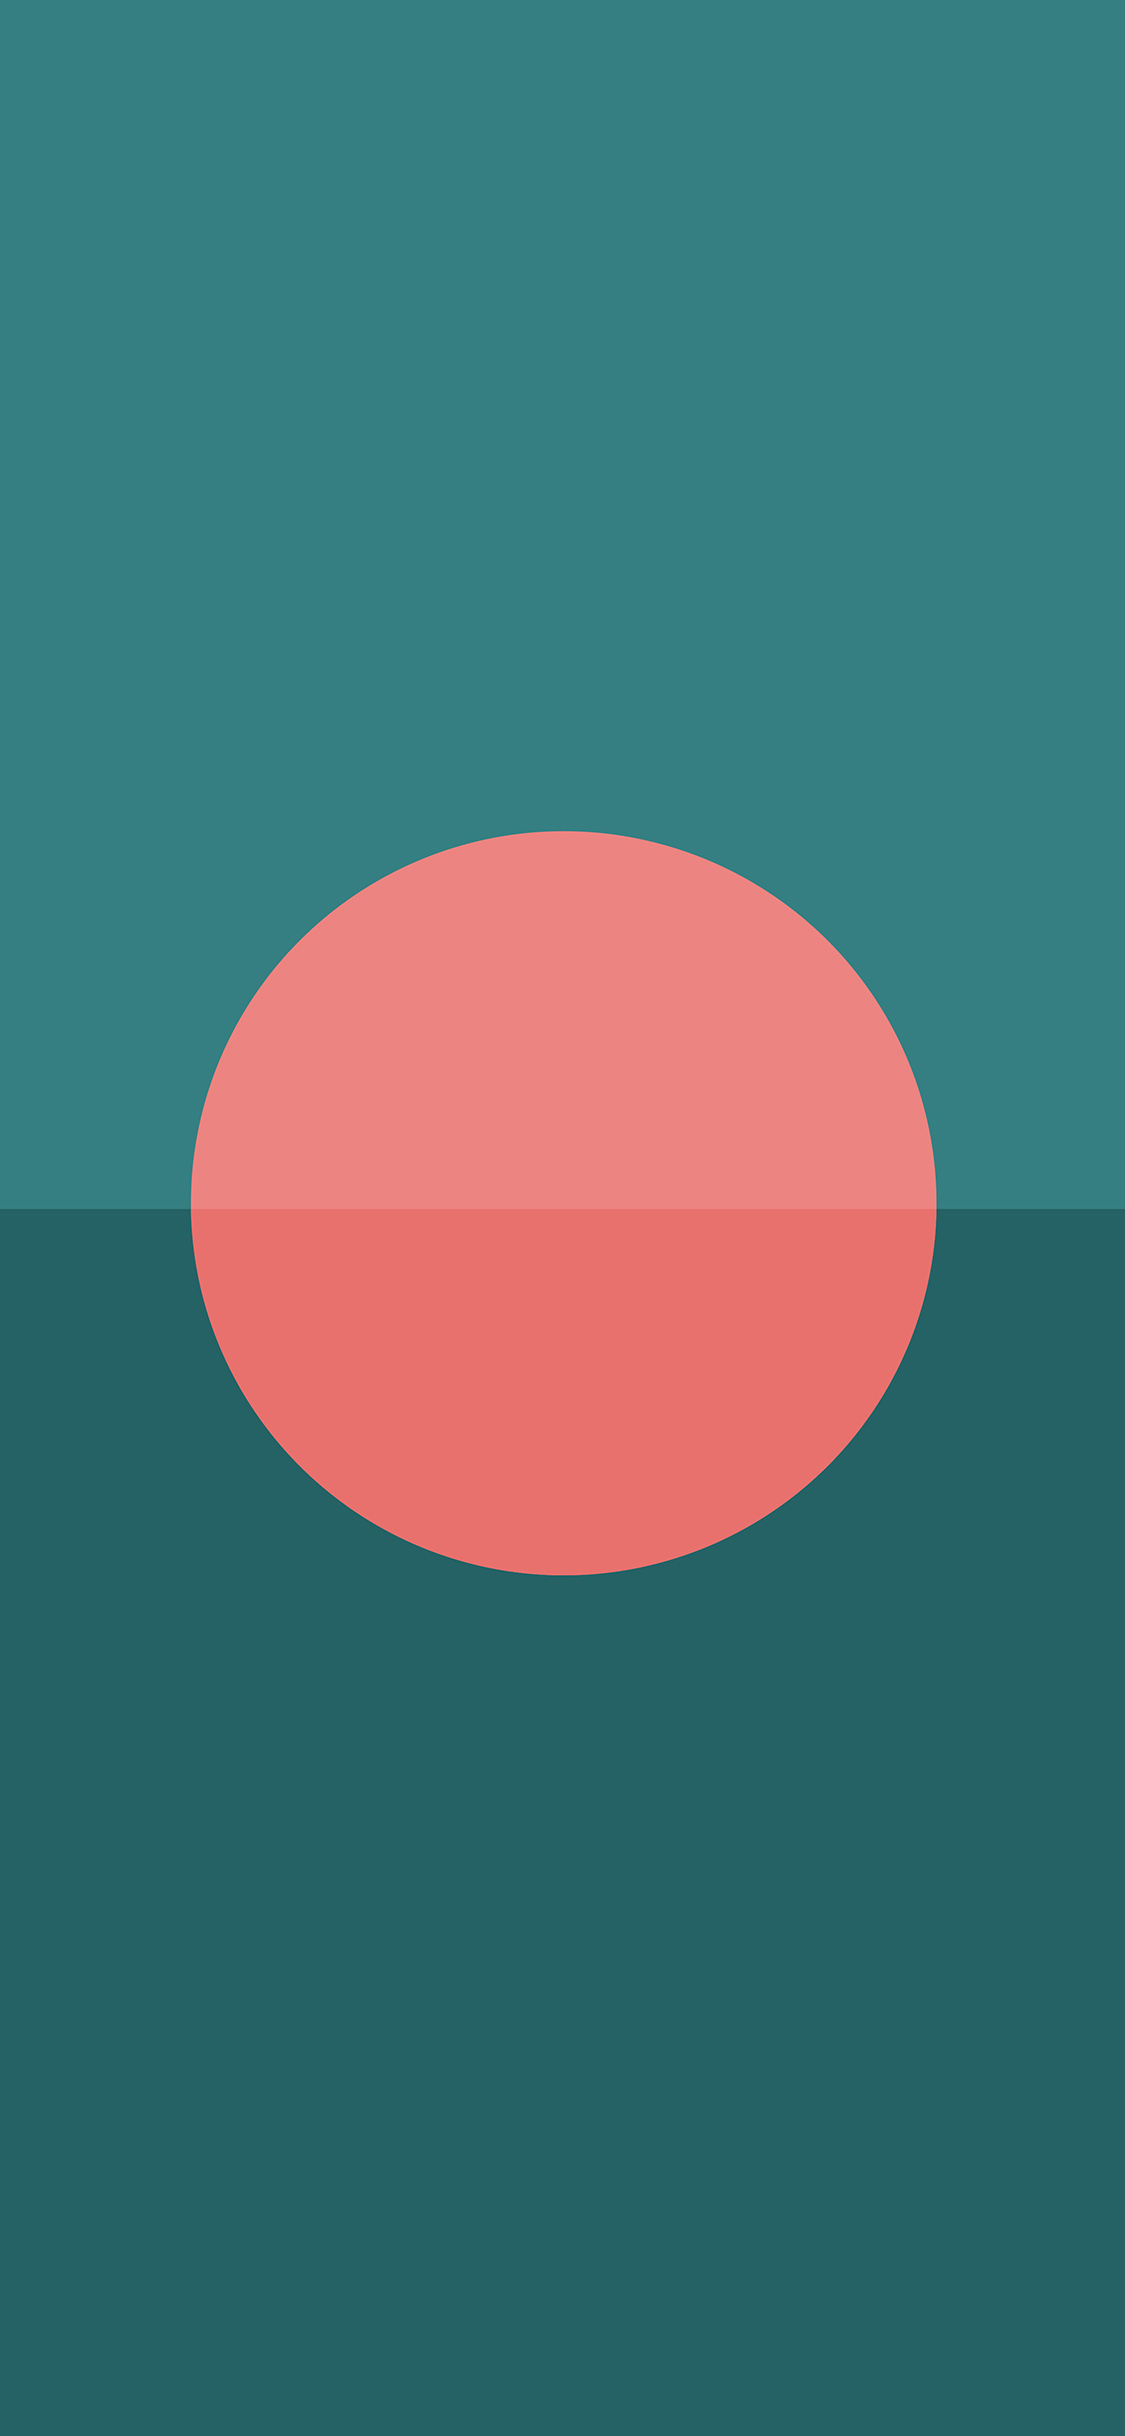 iPhoneXpapers.com-Apple-iPhone-wallpaper-ar38-minimal-tycho-art-green-sun-red-illustration